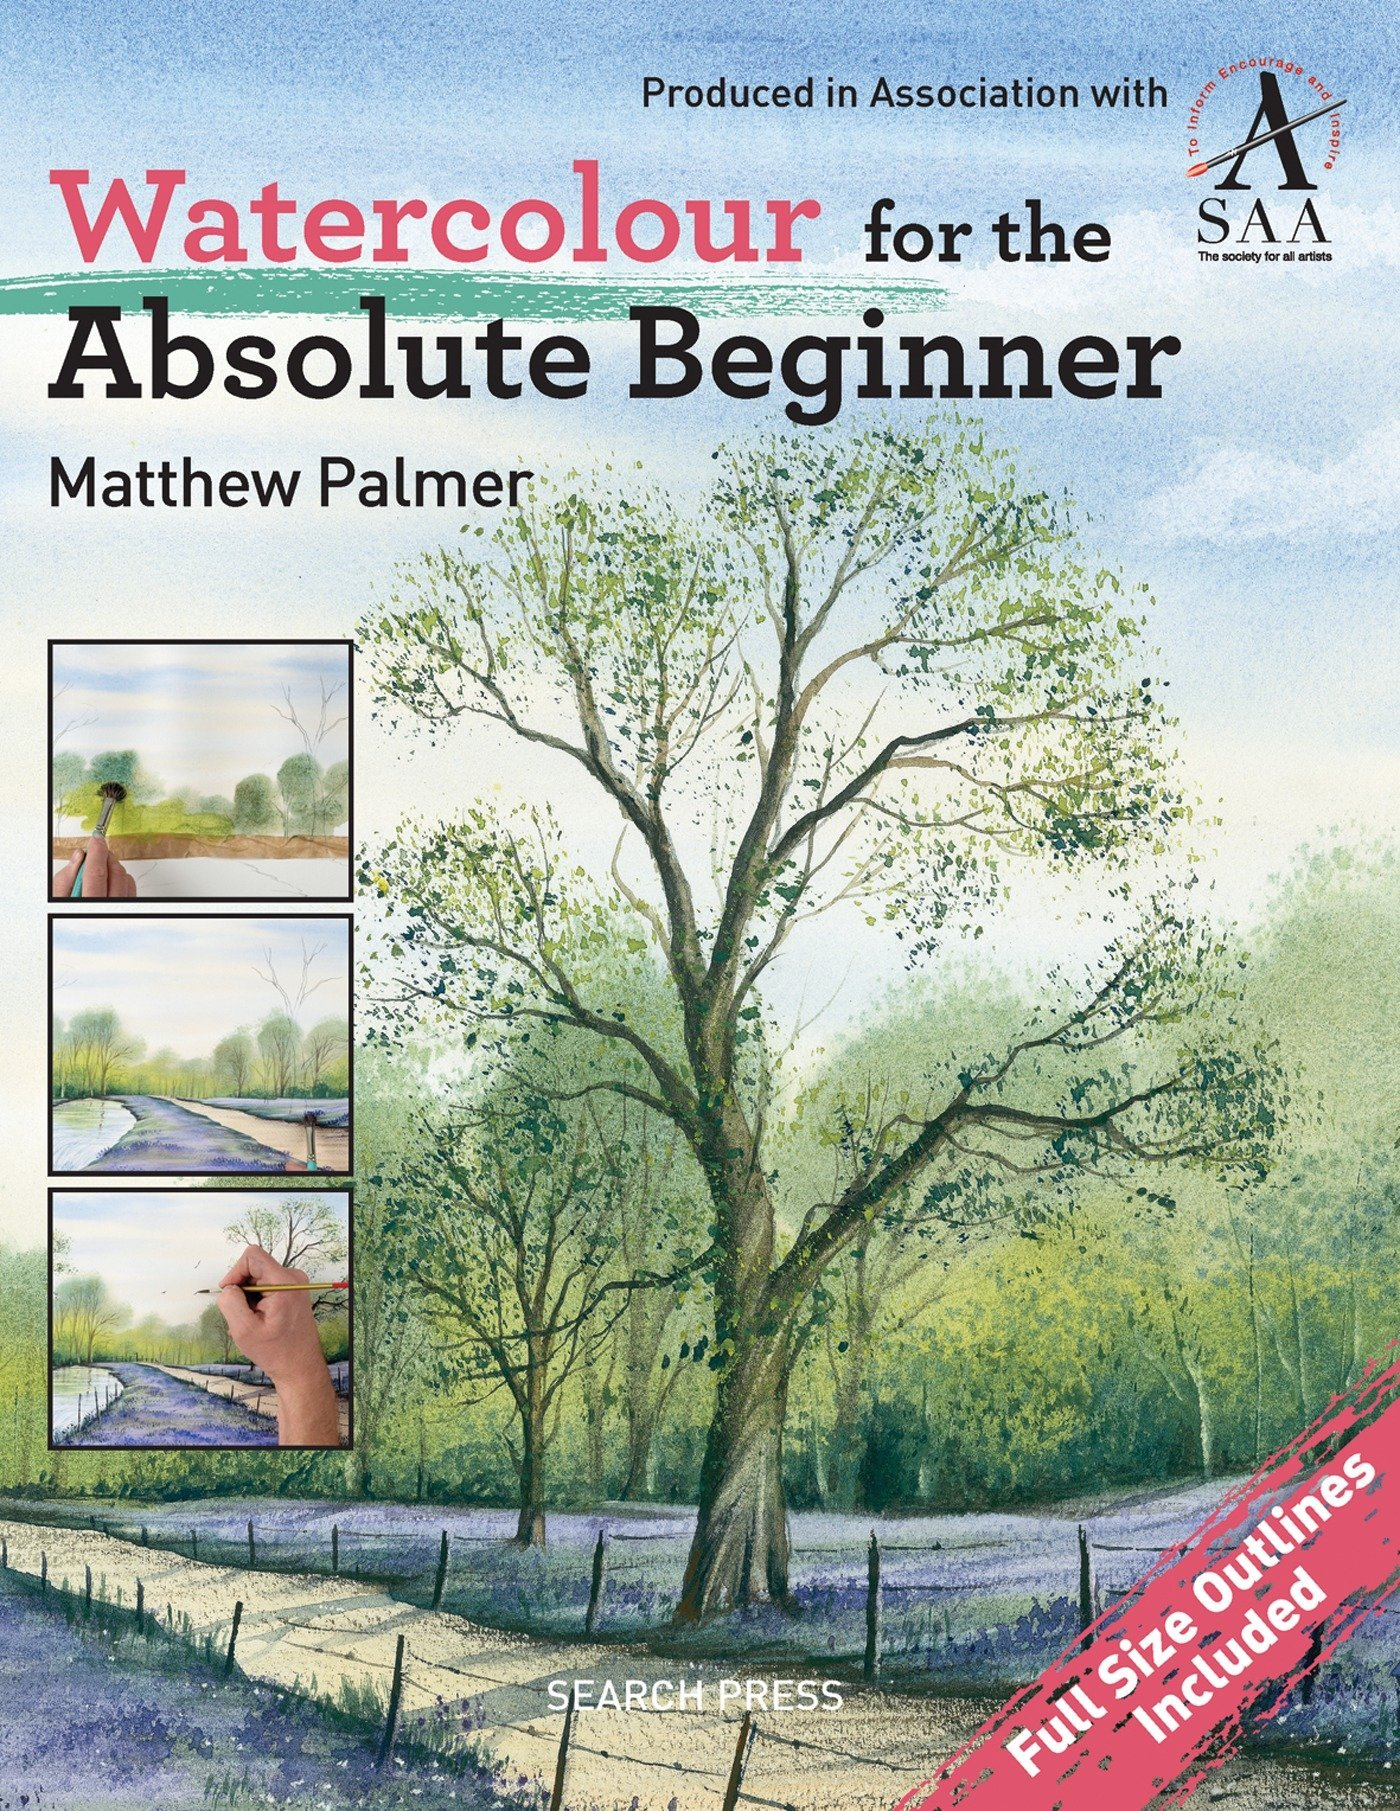 Watercolour for the Absolute Beginner: The Society for All Artists (ABSOLUTE BEGINNER ART) by Search Press